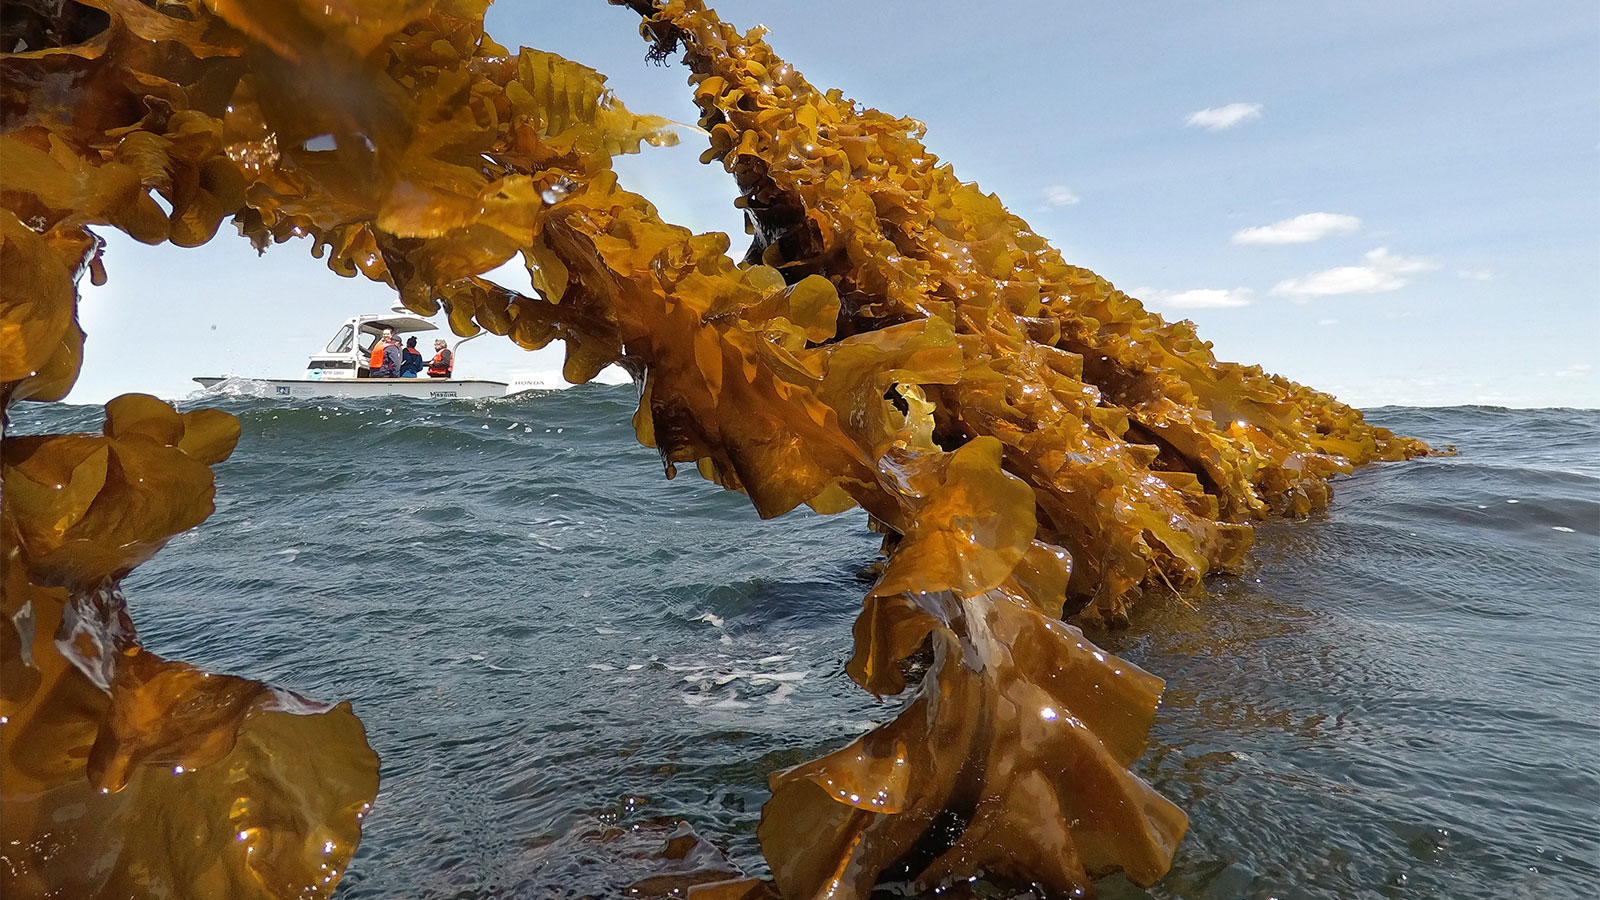 Kelp clinging to a rope connected to a boat